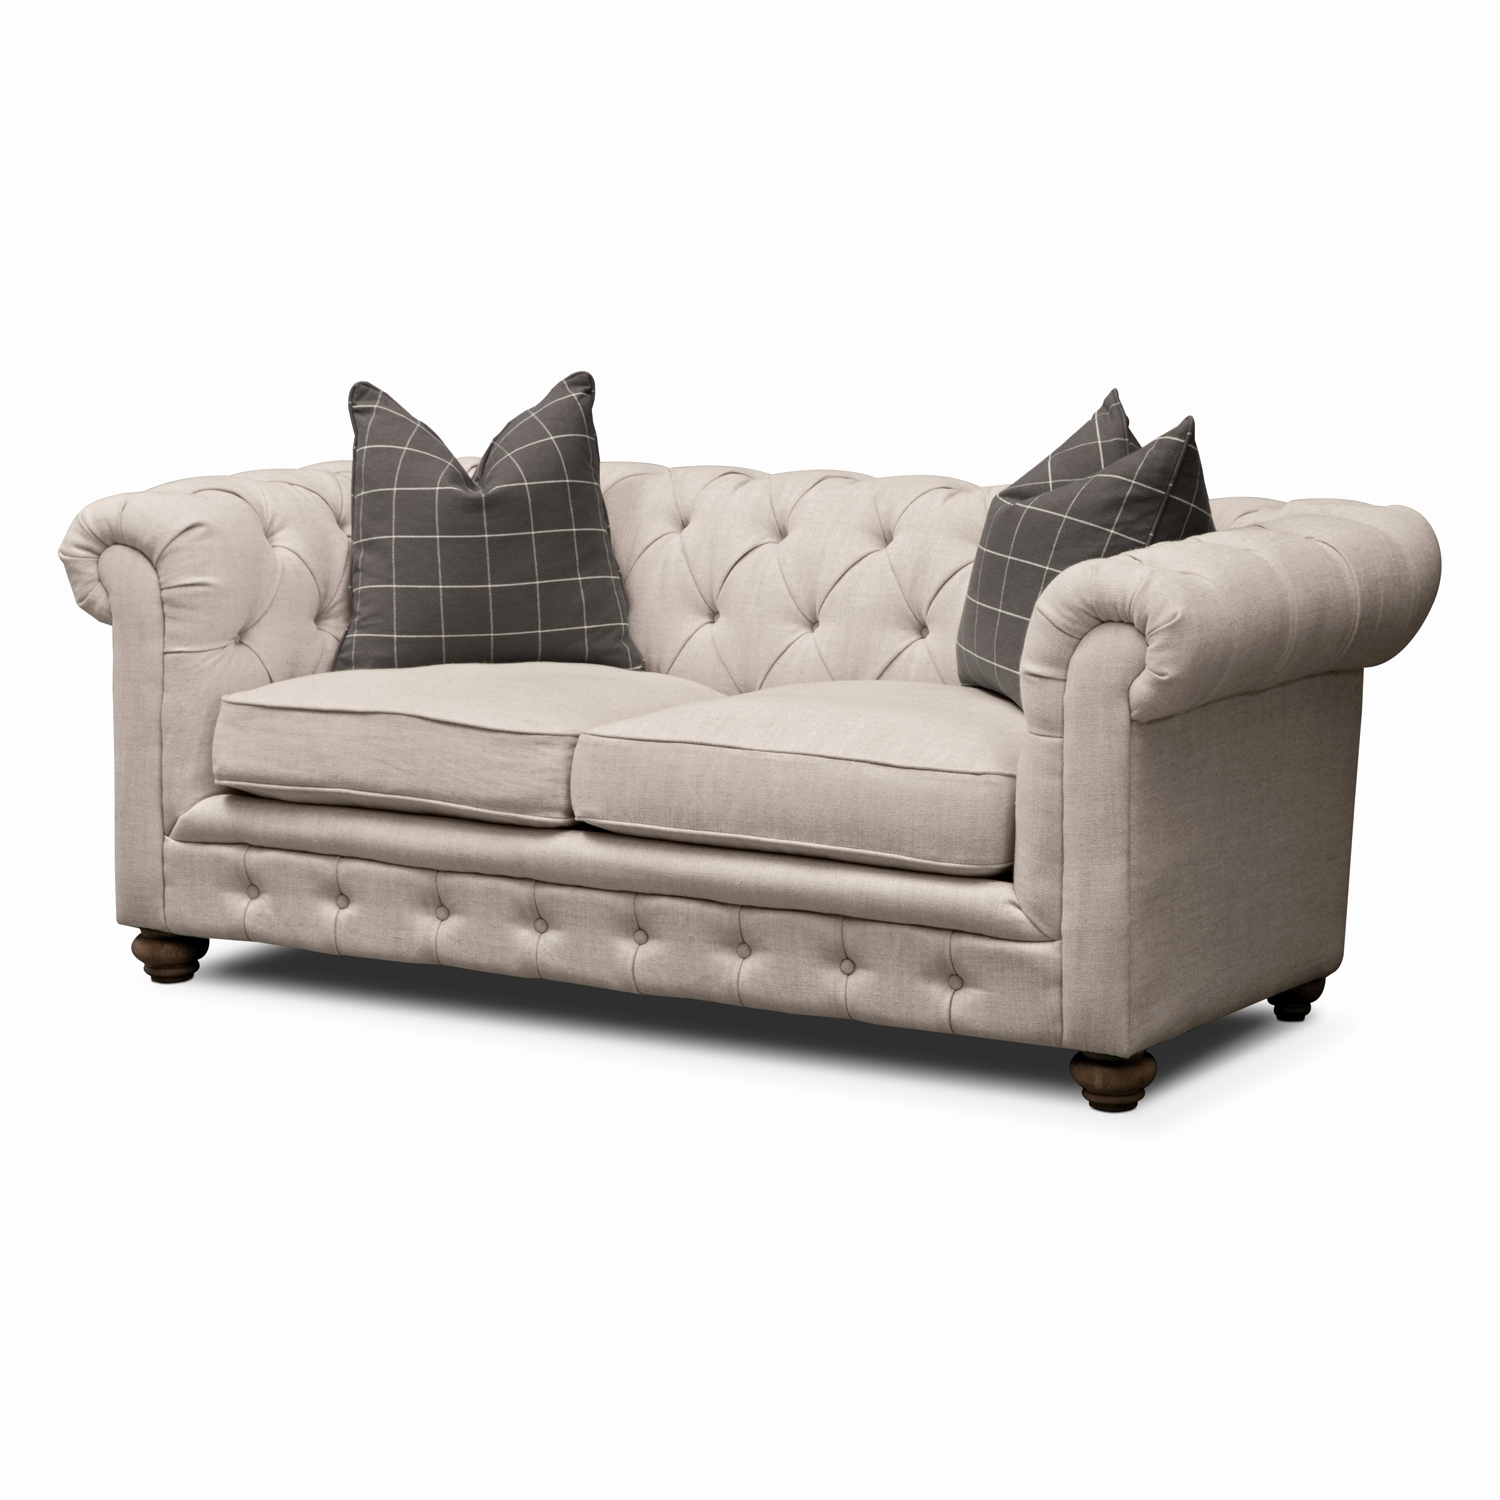 Favorite Bryden Sofa Slate Value City Furniture And Mattresses For Sofas Within Value City Sofas (View 2 of 15)